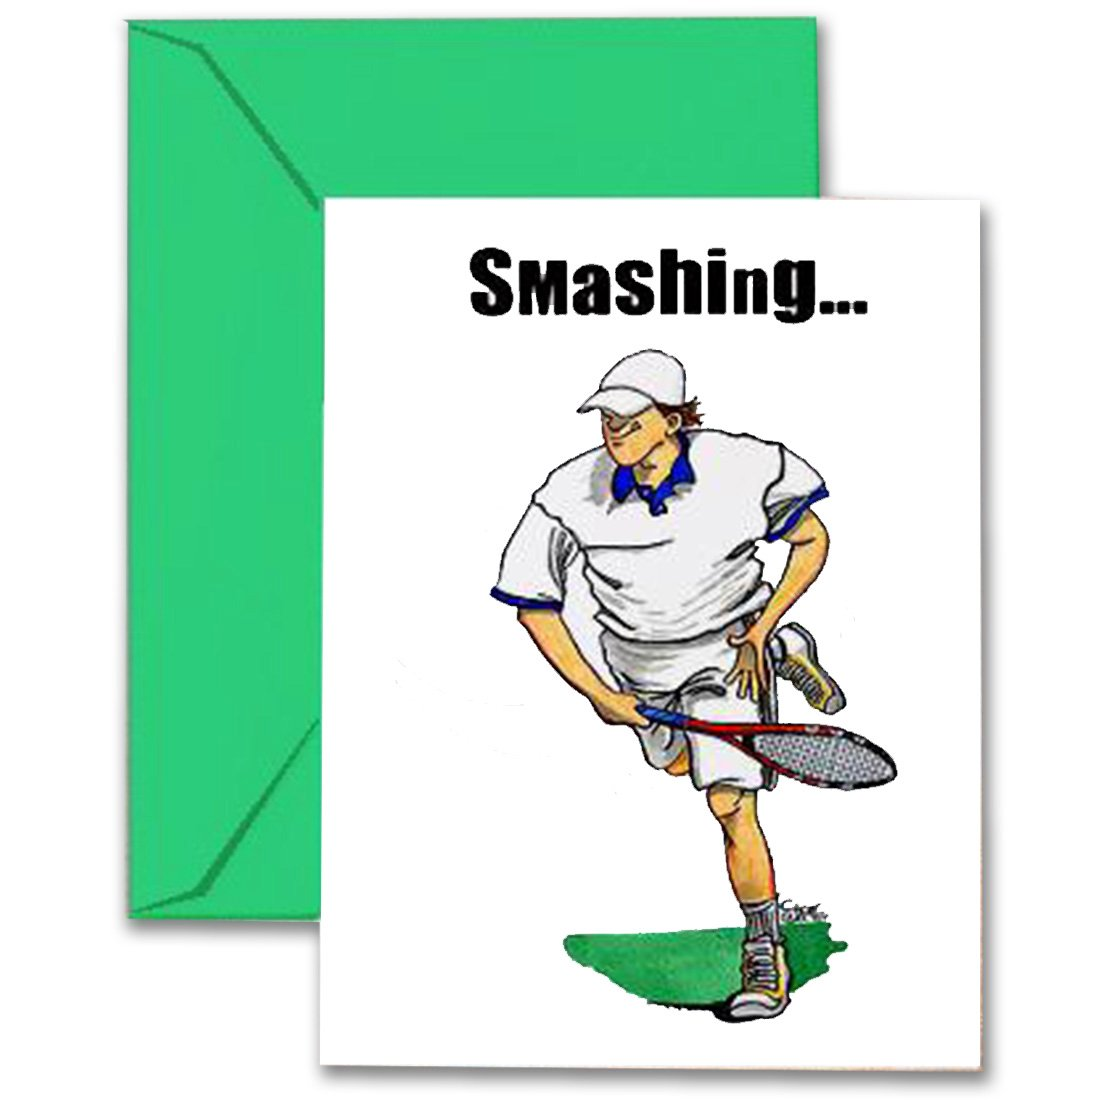 Cheap sports greeting cards find sports greeting cards deals on get quotations tennis birthday card 5x7 play strong sports birthday greeting cards awesome for players m4hsunfo